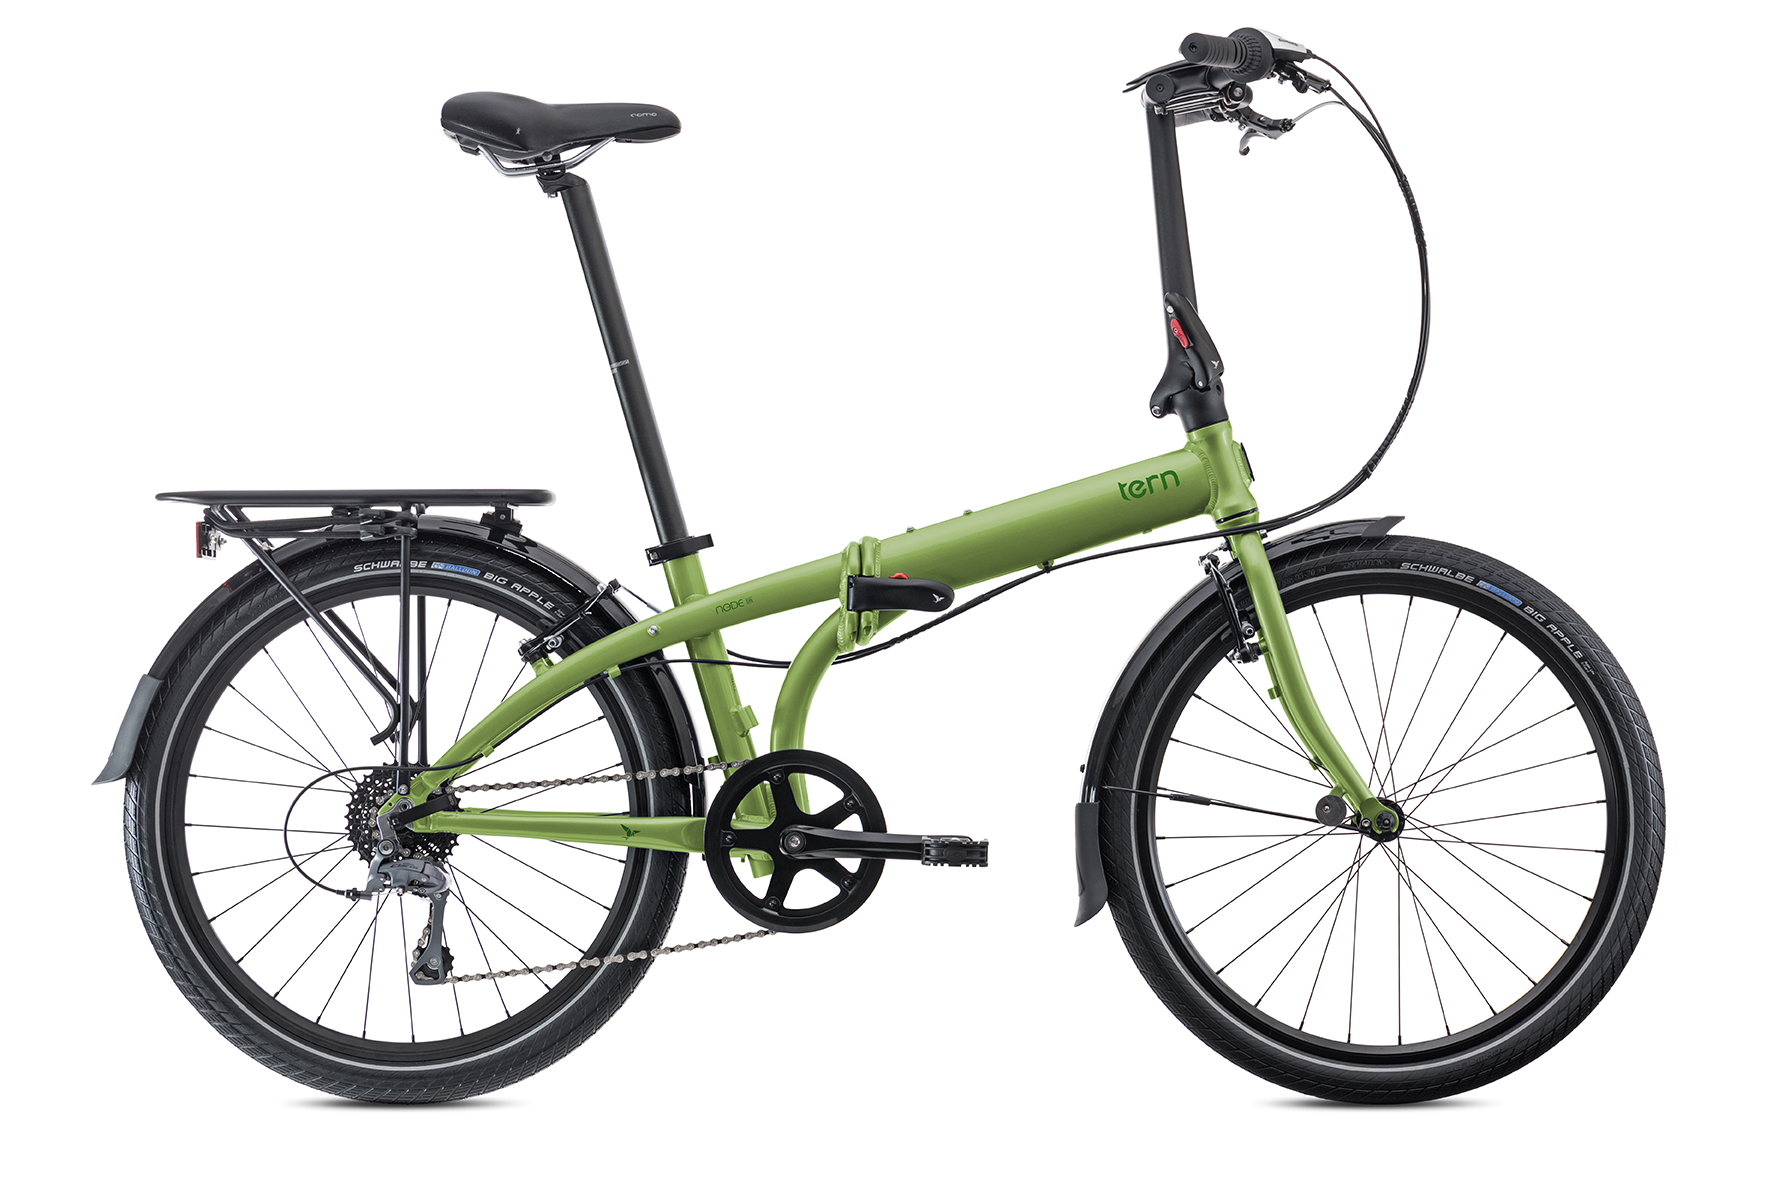 BICICLETA PLEGABLE TERN NODE D8 ROD 24